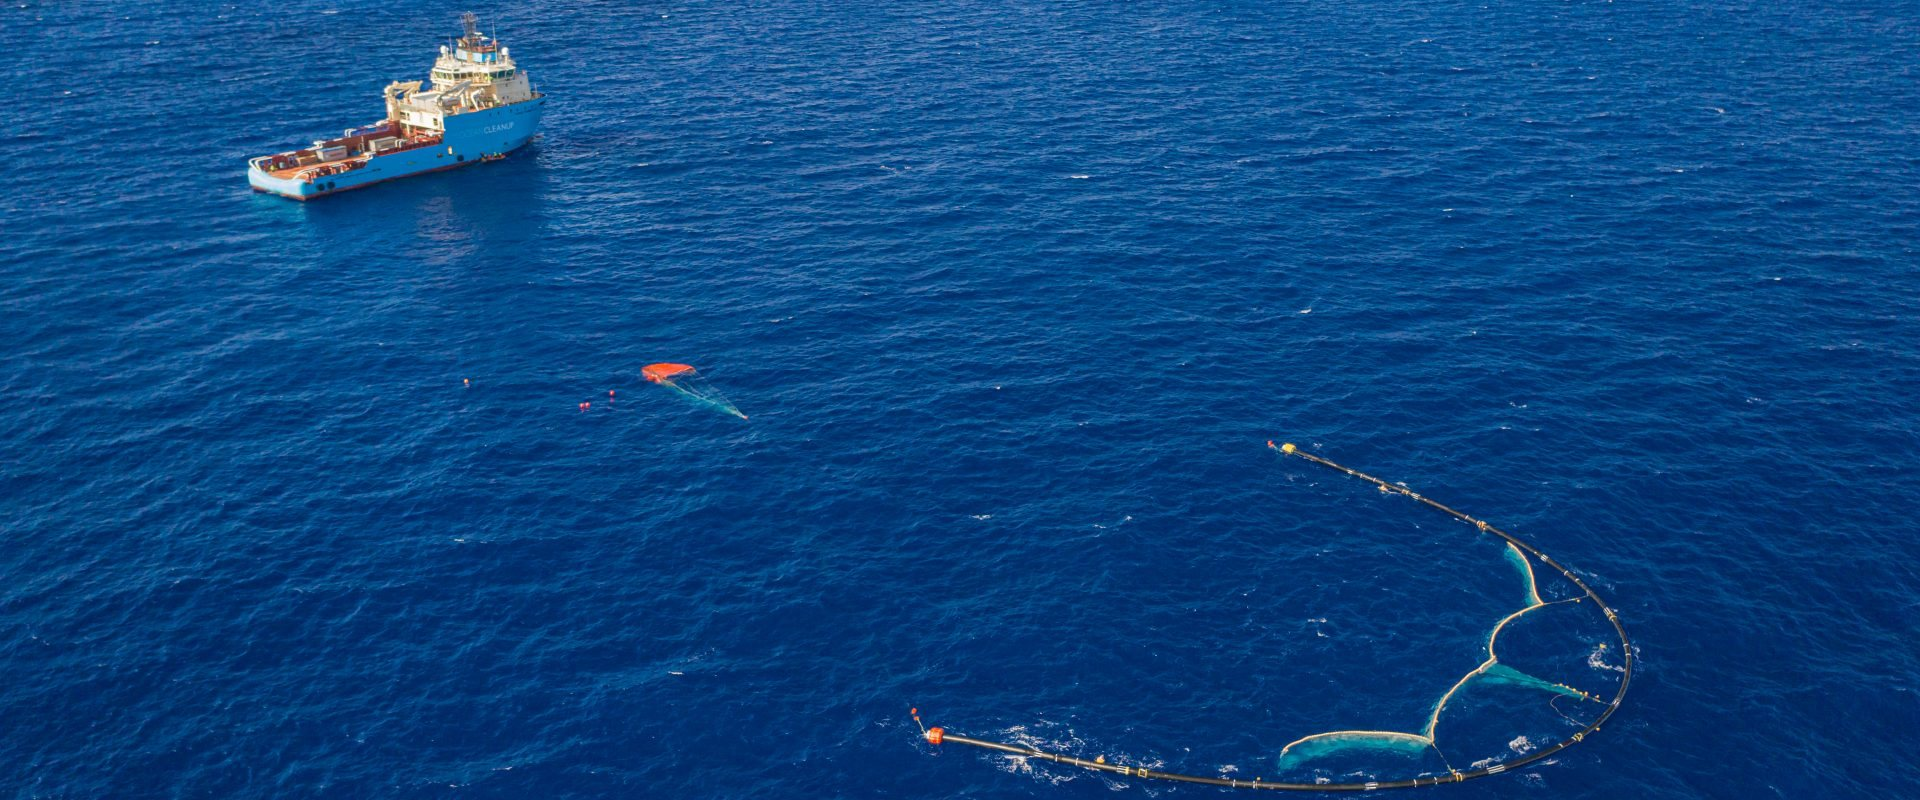 The ocean cleanup uses machine learning to identify plastic pollution in rivers and simulate how it moves in the ocean. Ocean Cleanup Deploys Parachute To Slow Down Trash Collecting Barrier Dutch Water Sector